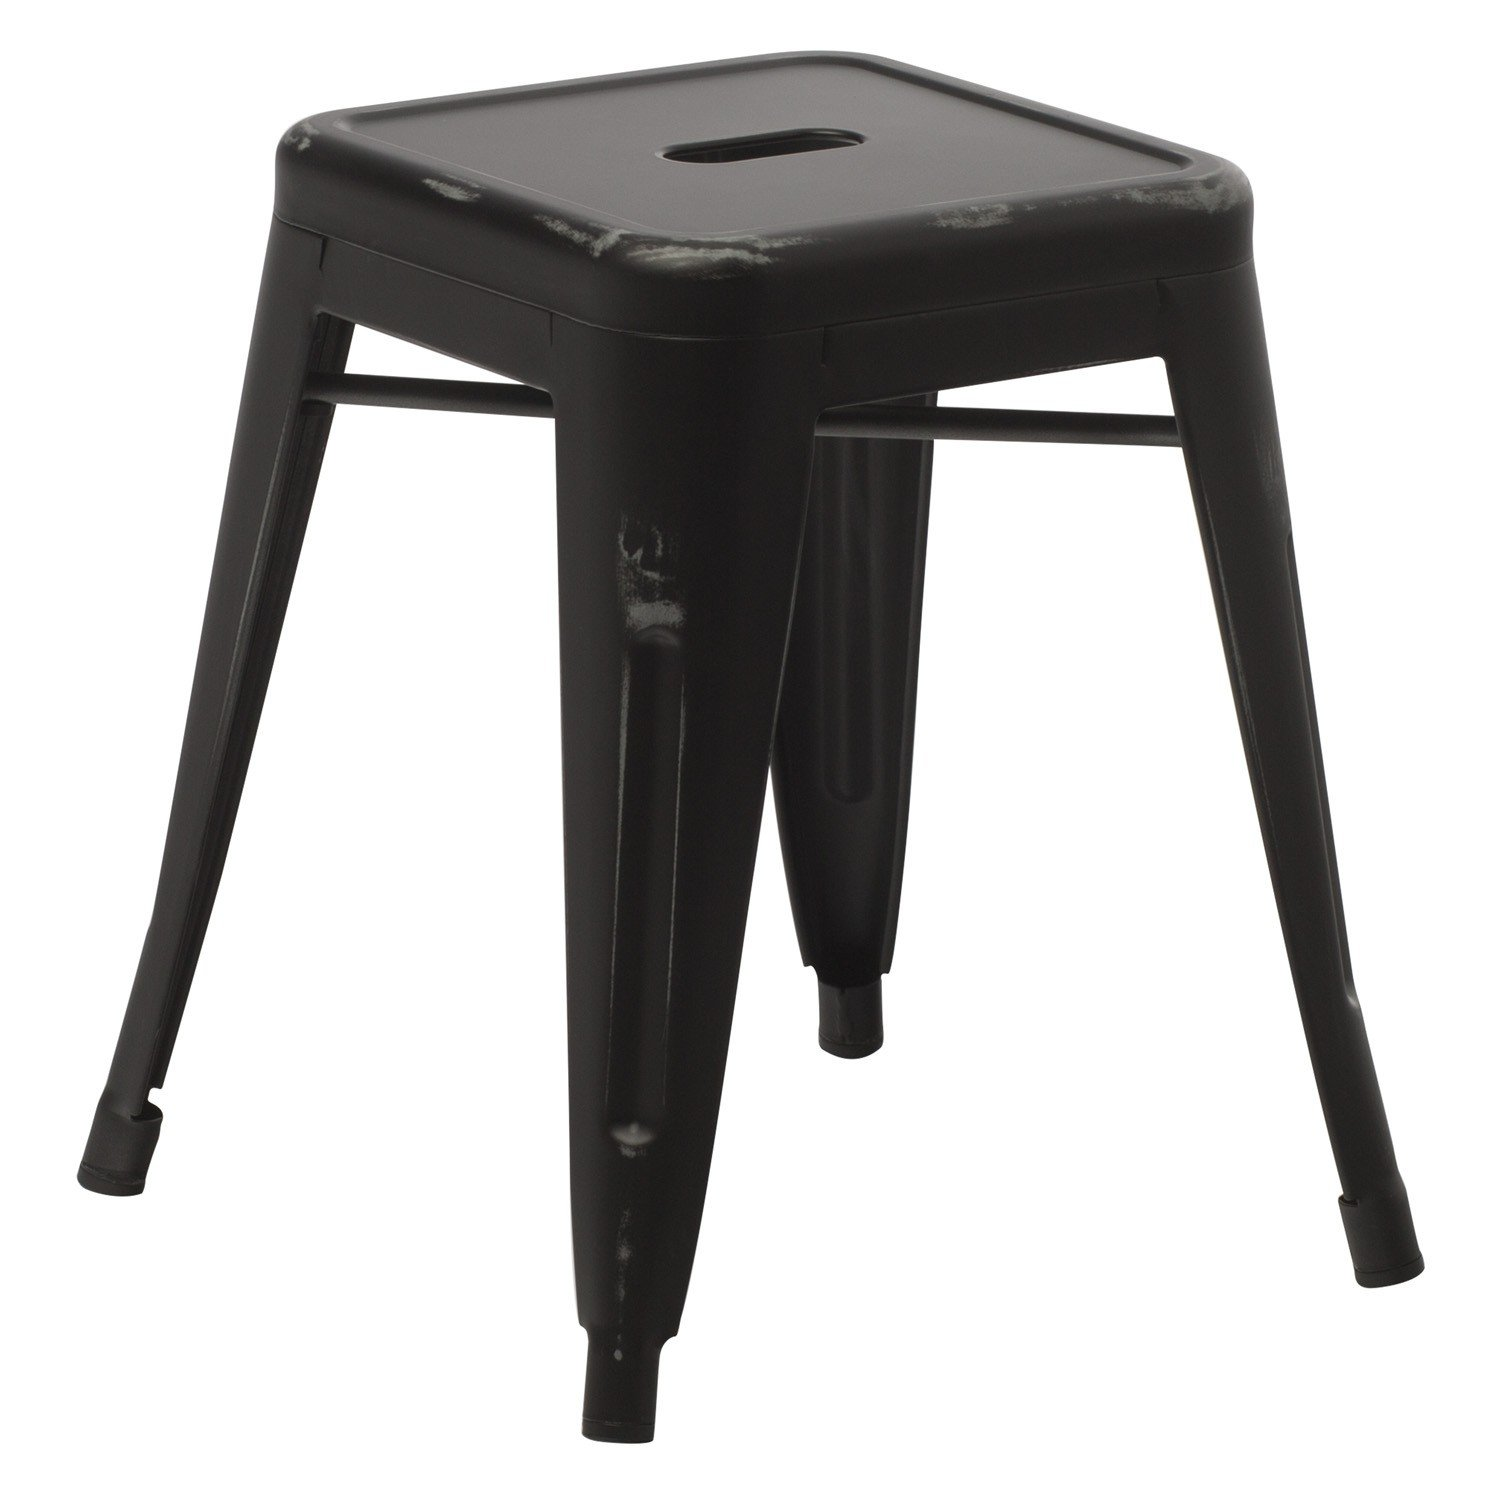 LIX Vintage Low Steel Stool, gallery image 1